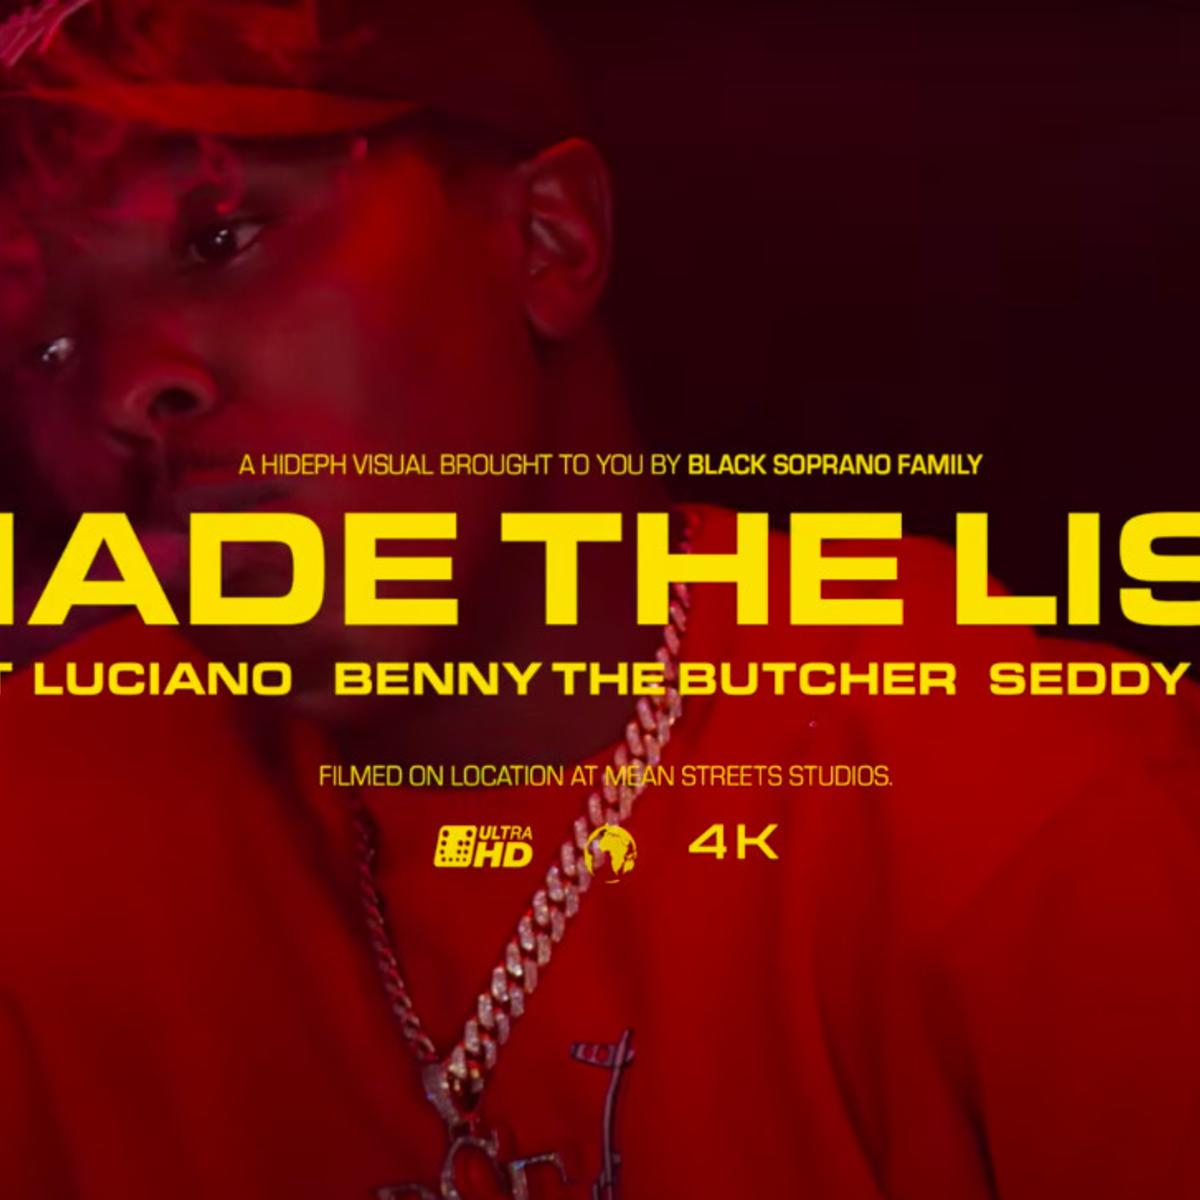 DOWNLOAD MP3: LoveBoat Luciano Ft. Benny the Butcher & Seddy Hendrinx – Made The List